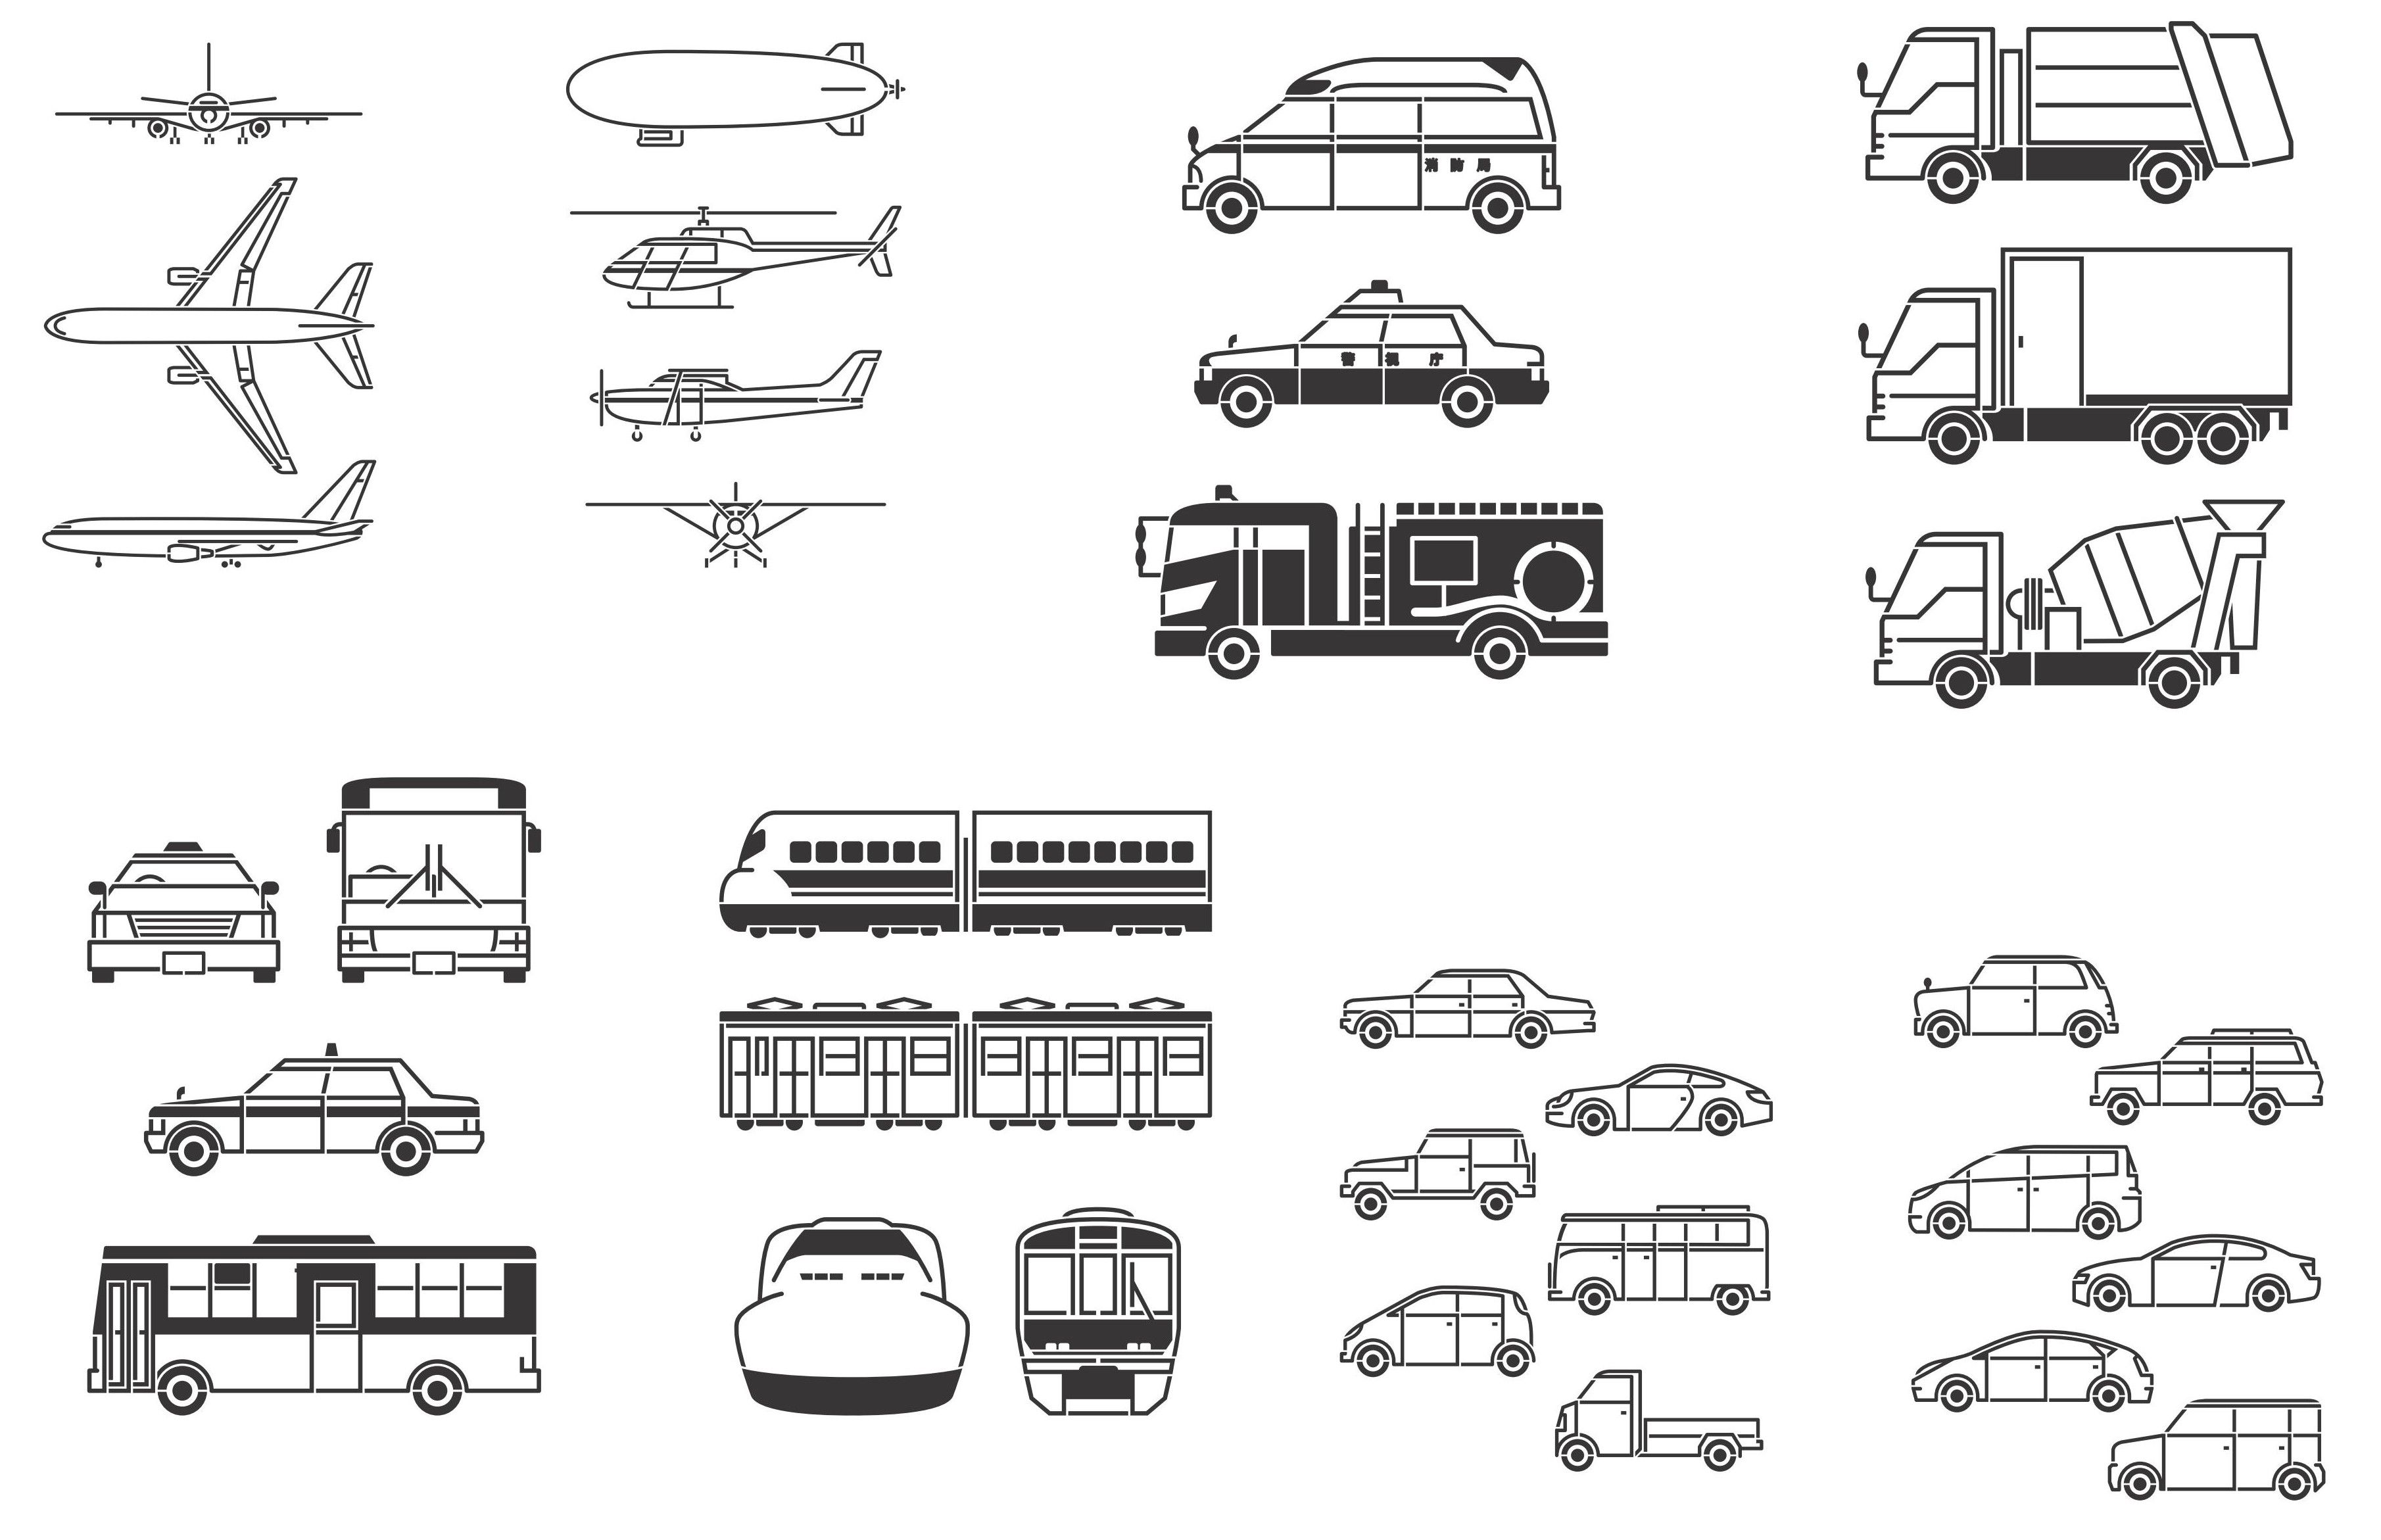 Transport, Plane, Helicopter, Car, Truck, Train, Bus